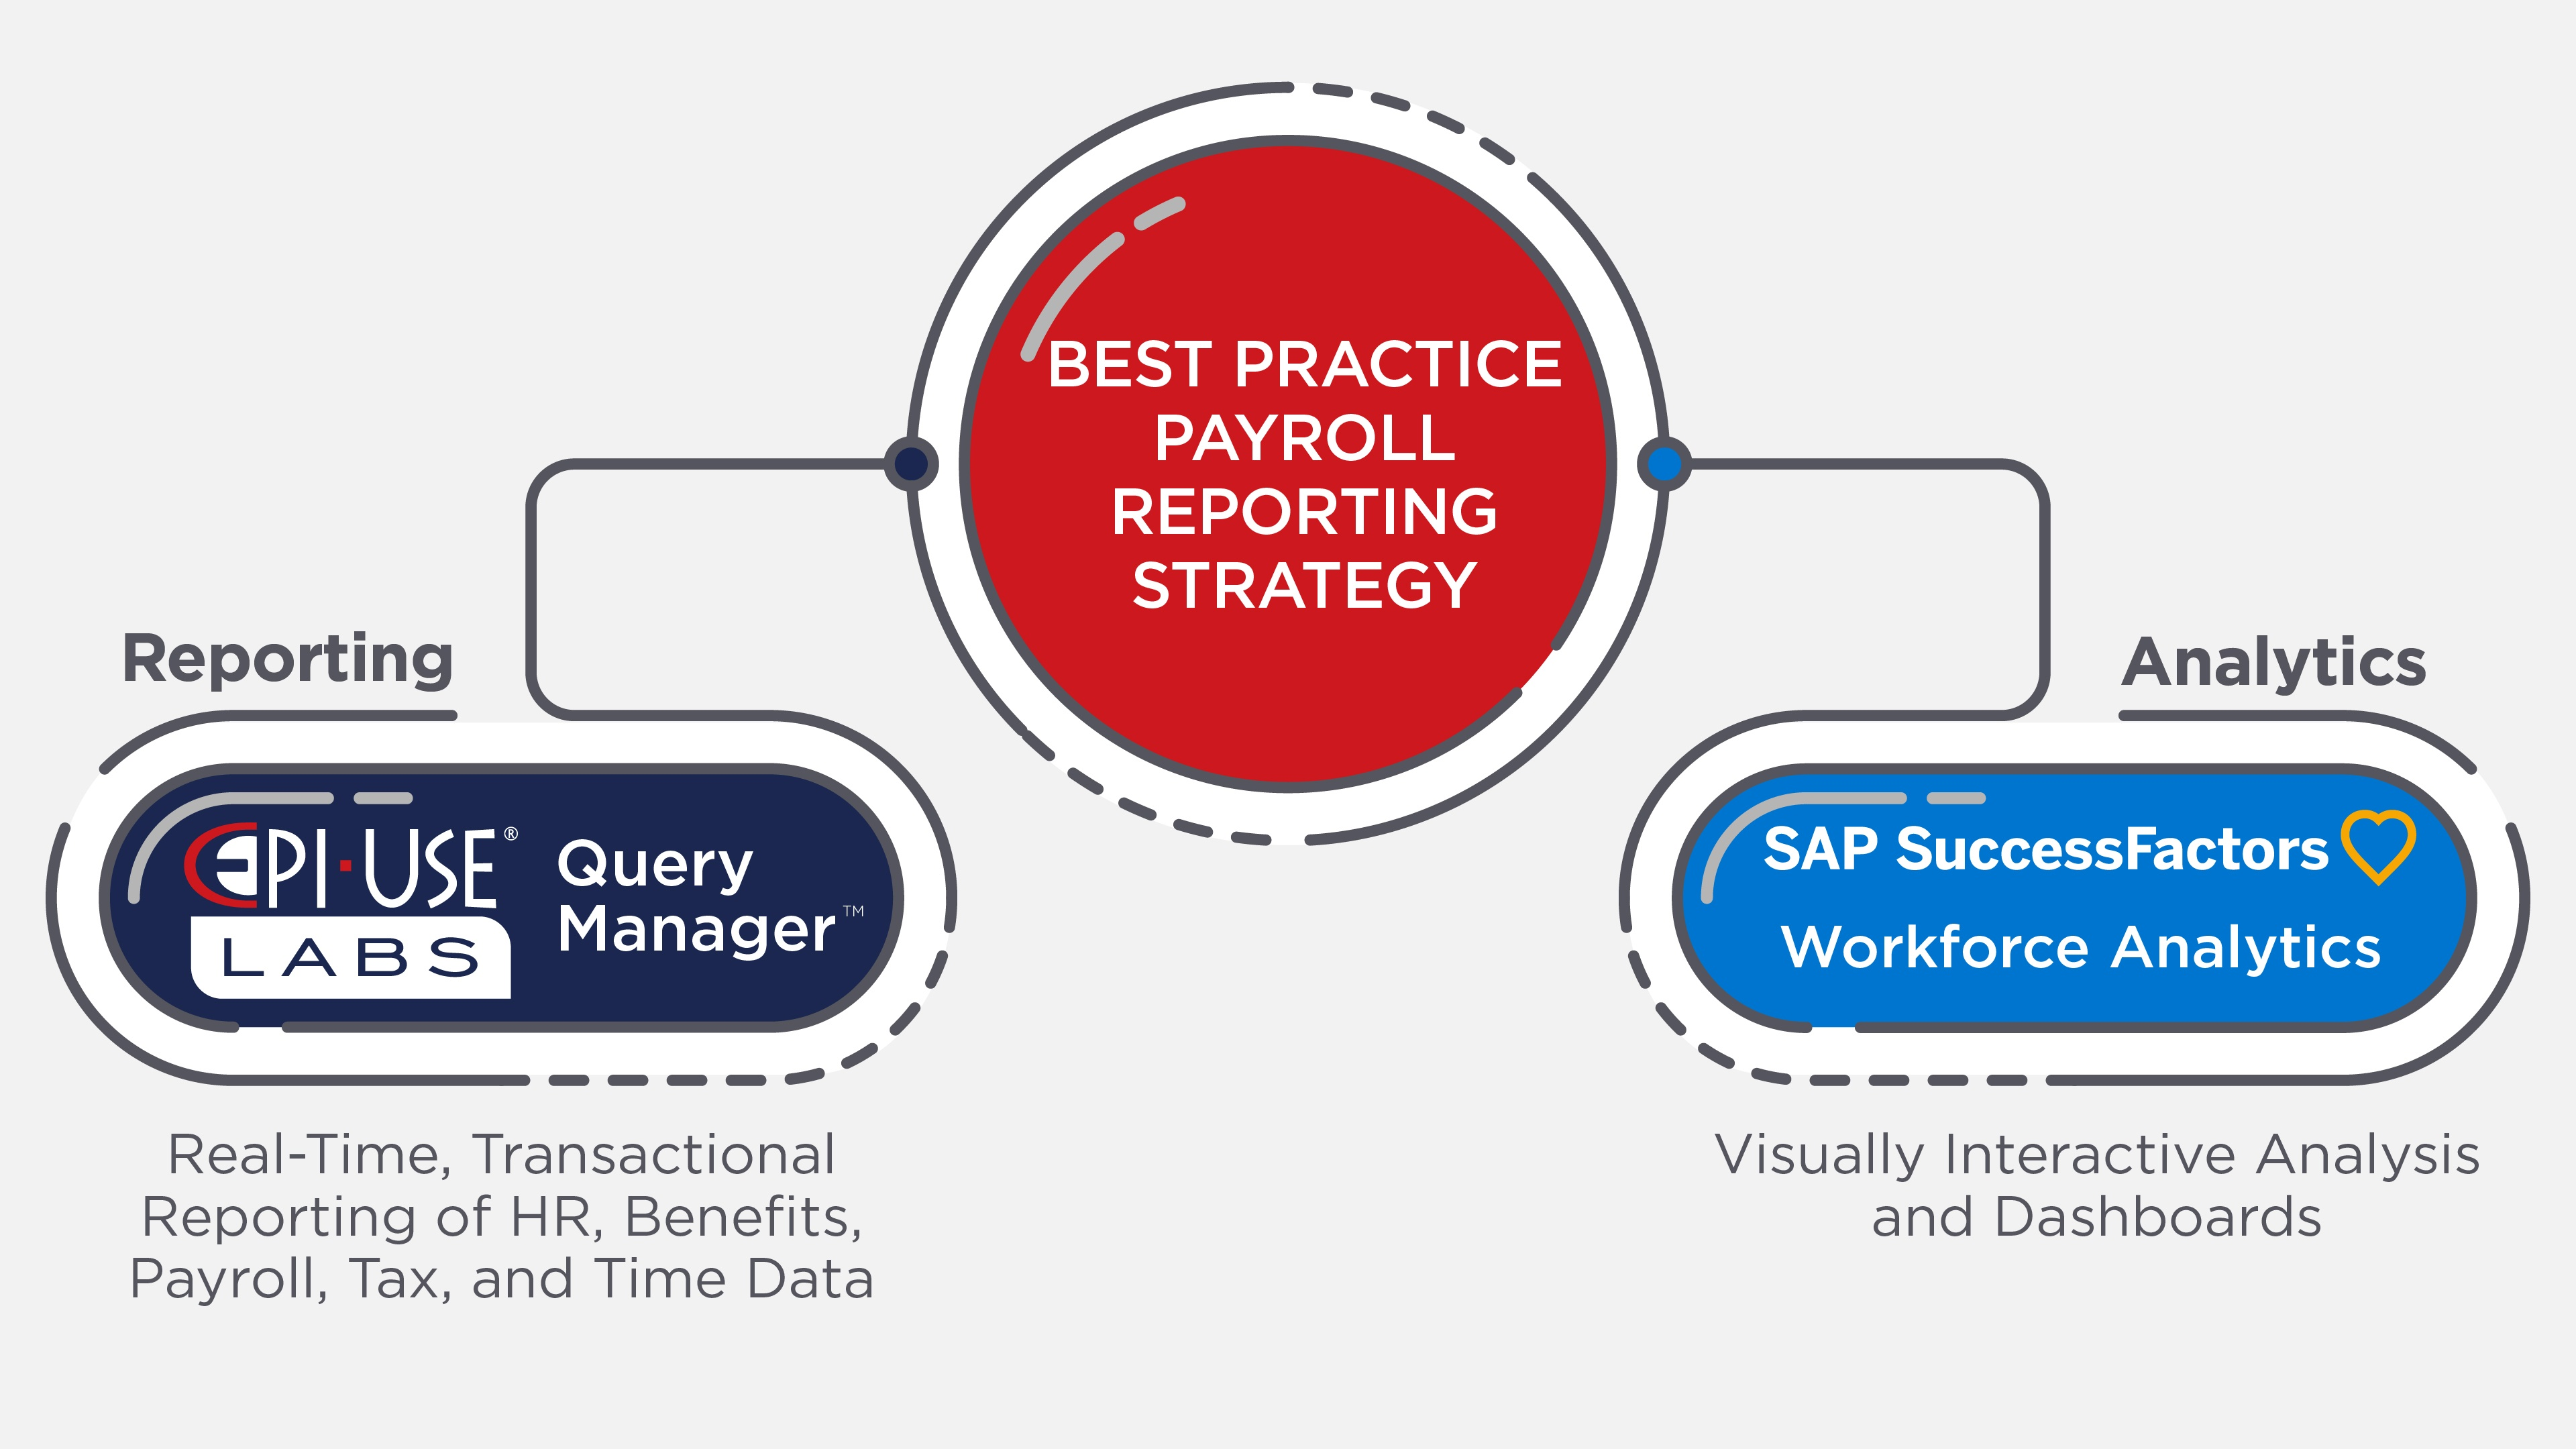 Trying to Compare Query Manager and SAP SuccessFactors Workforce Analytics is like trying to compare Apples and Oranges